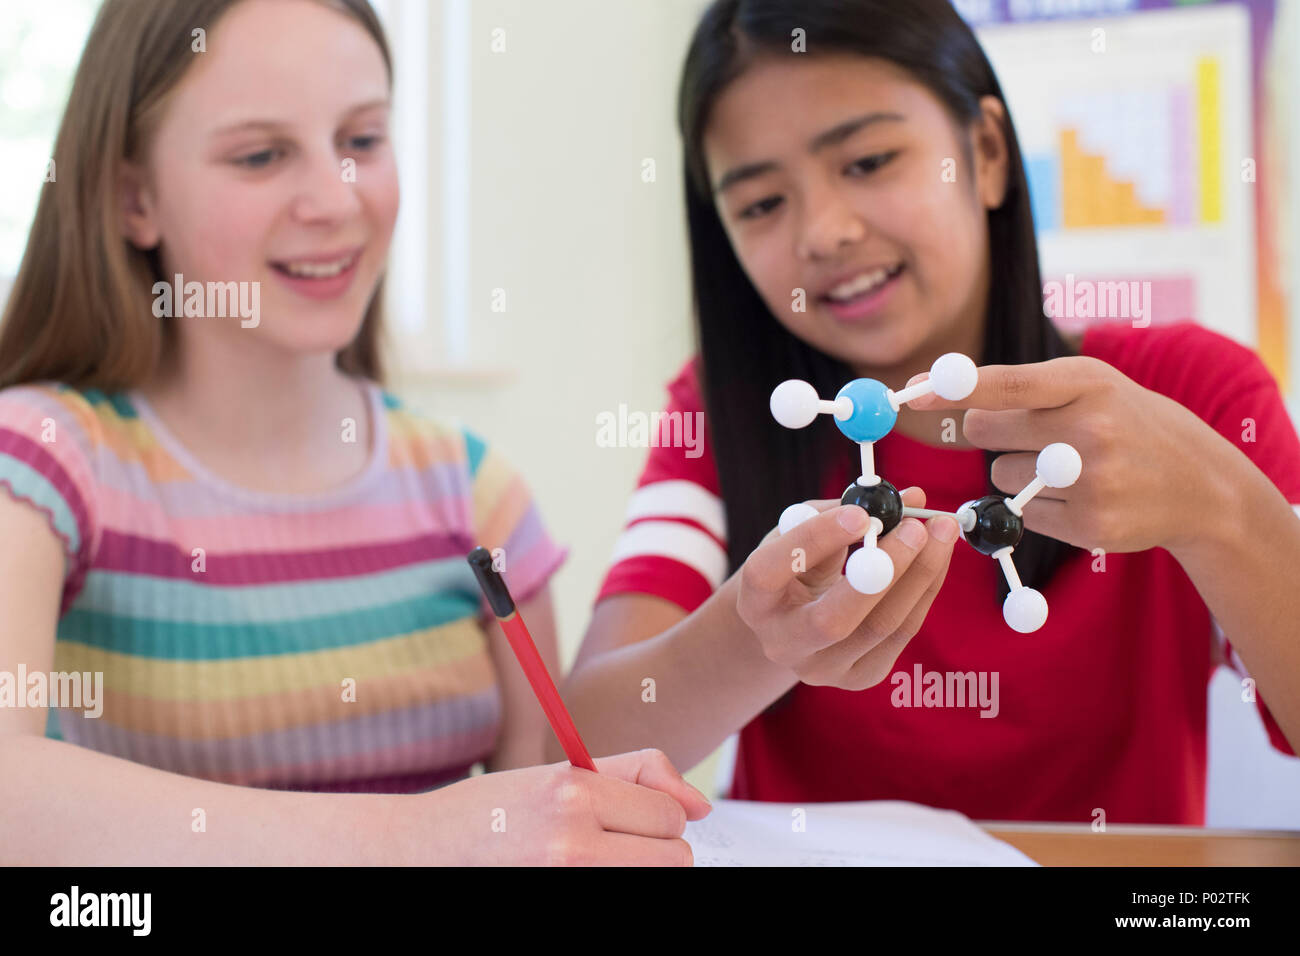 Two Female Pupils Using Molecular Model Kit In Science Lesson - Stock Image